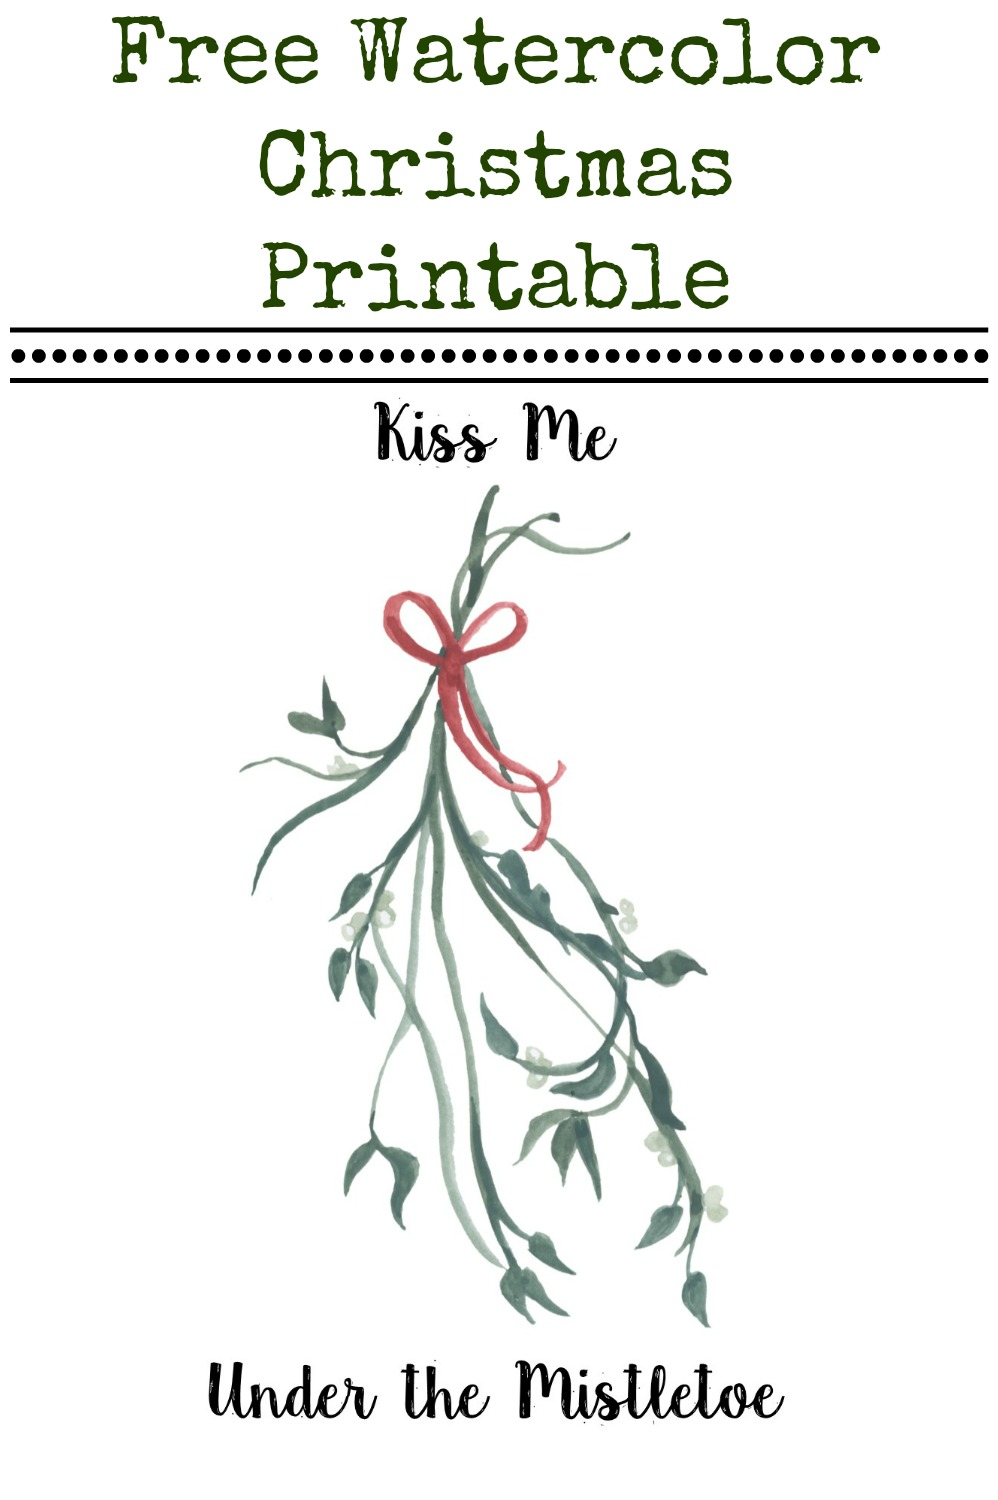 Free Kiss Me under the Mistletoe Watercolor Printable for Christmas